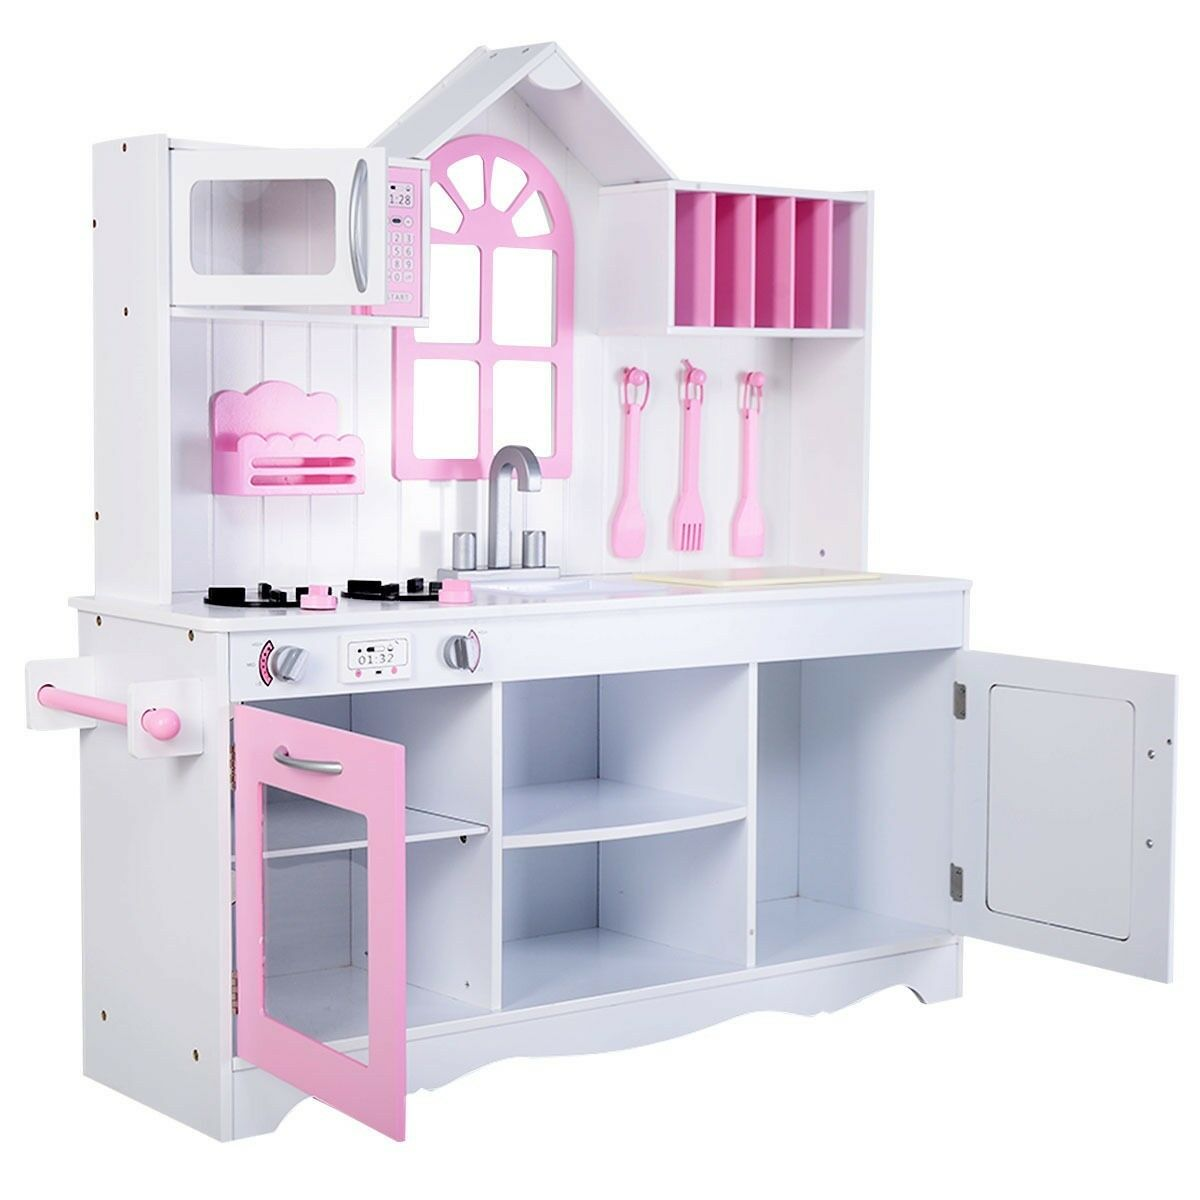 Kids Wood Wood Wood Kitchen Cooking Pretend Play Set Toy Baby Toddler Wooden Playset Gift 860b24